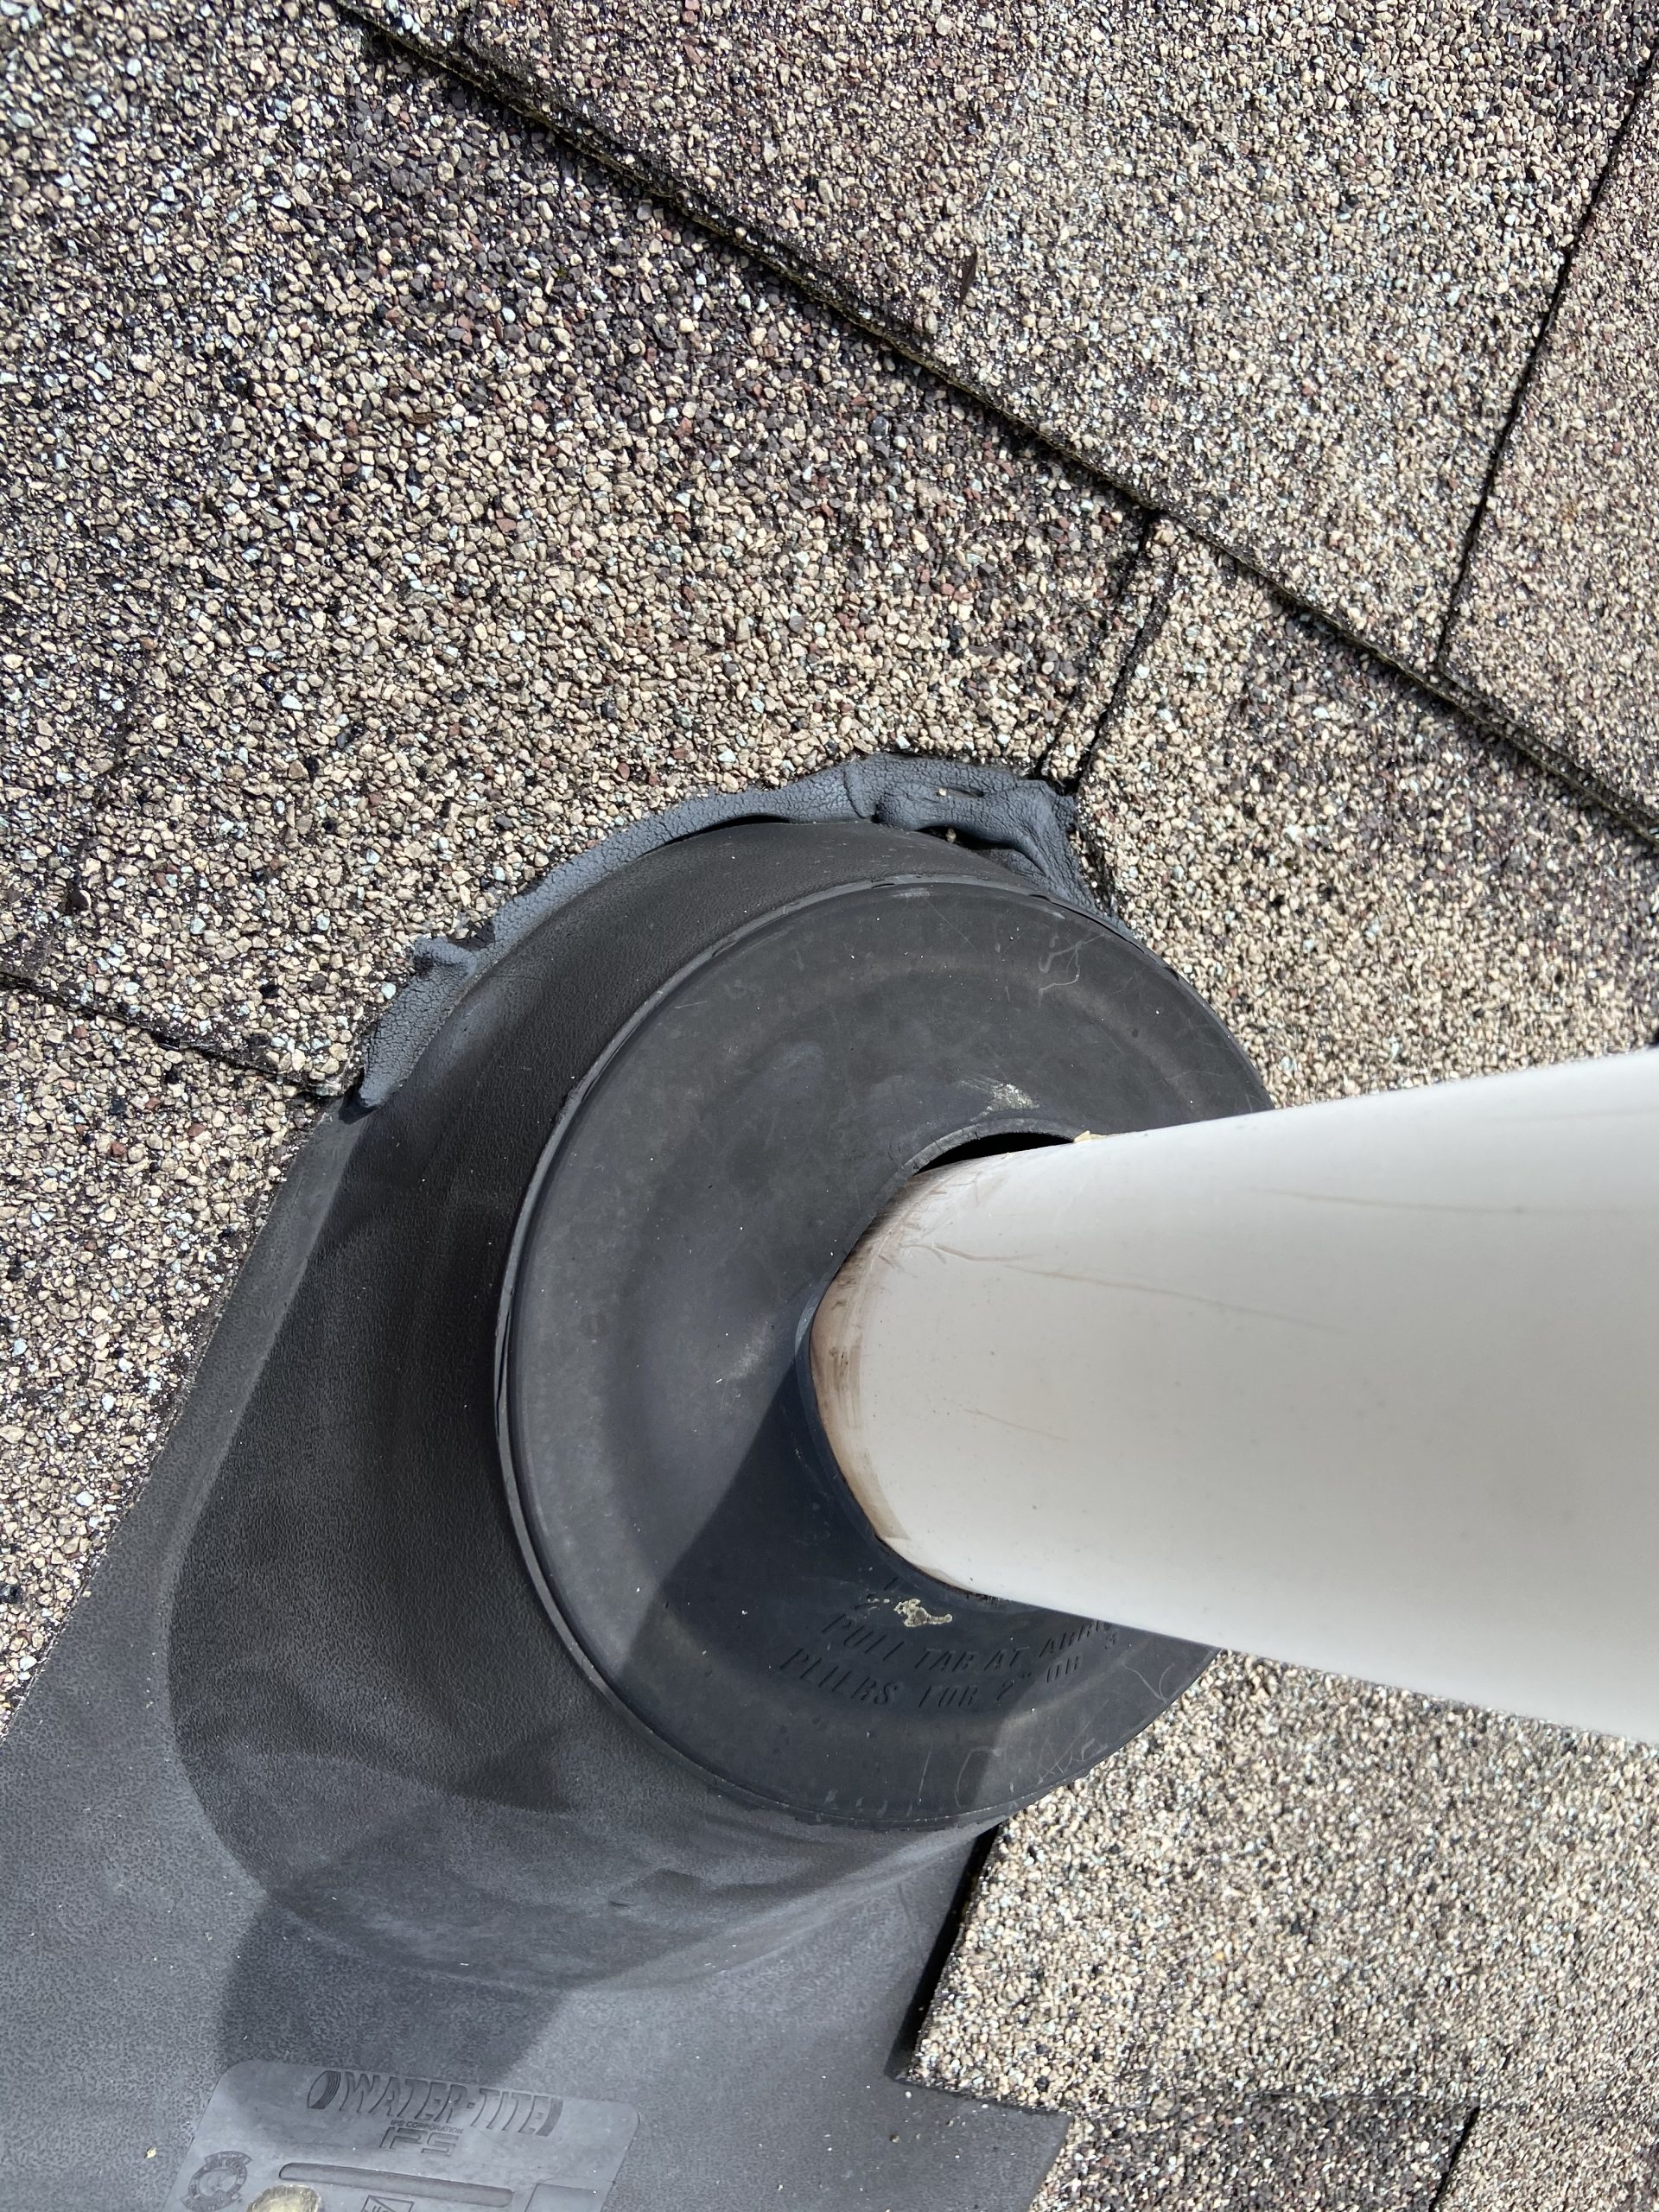 this is a picture of the gaps between a pipe boot and the pipe coming through the roof